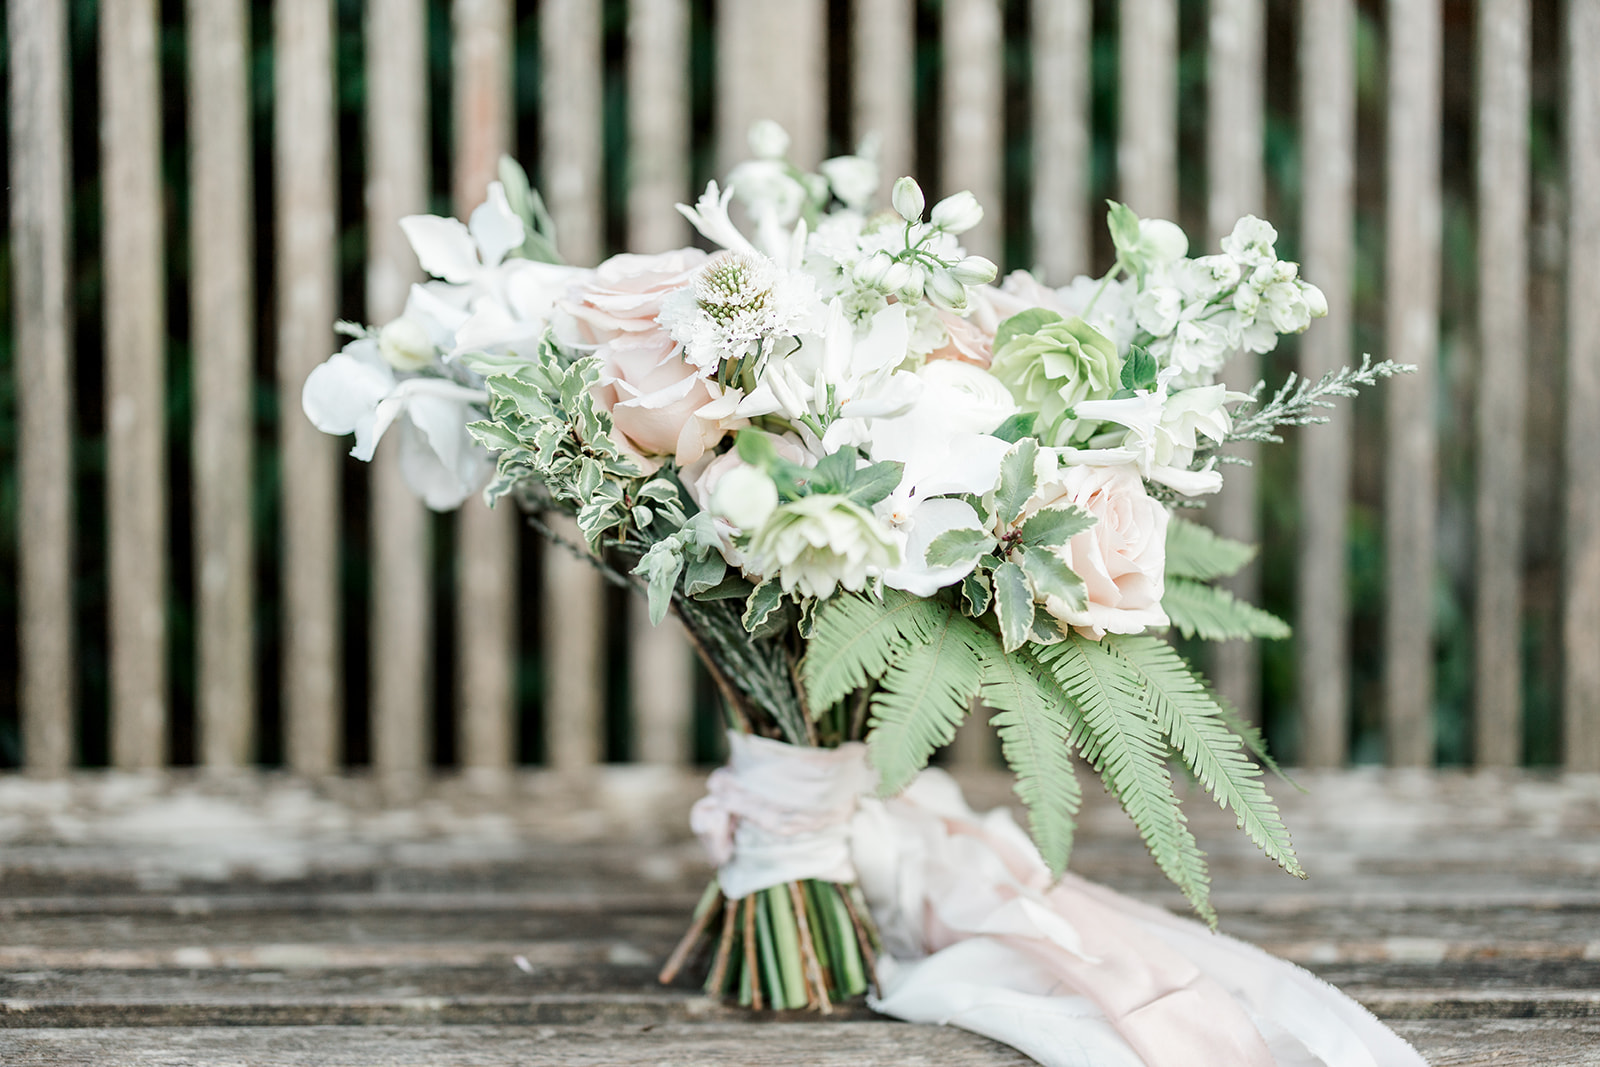 Wedding bouquet with blush roses - Kelsie Scully Photography